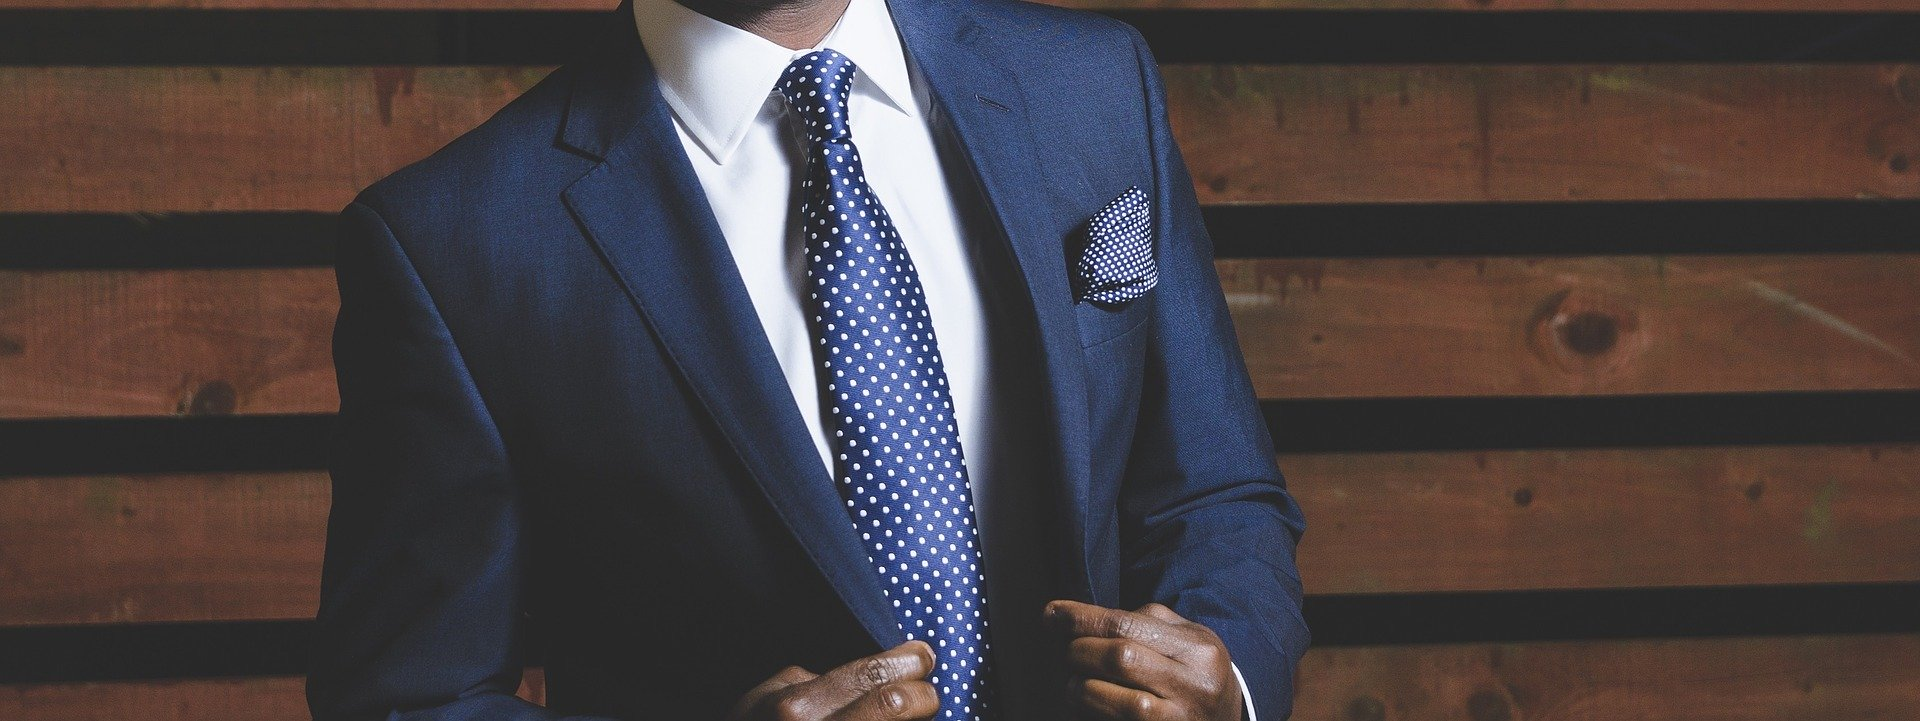 man-blue-suit-business